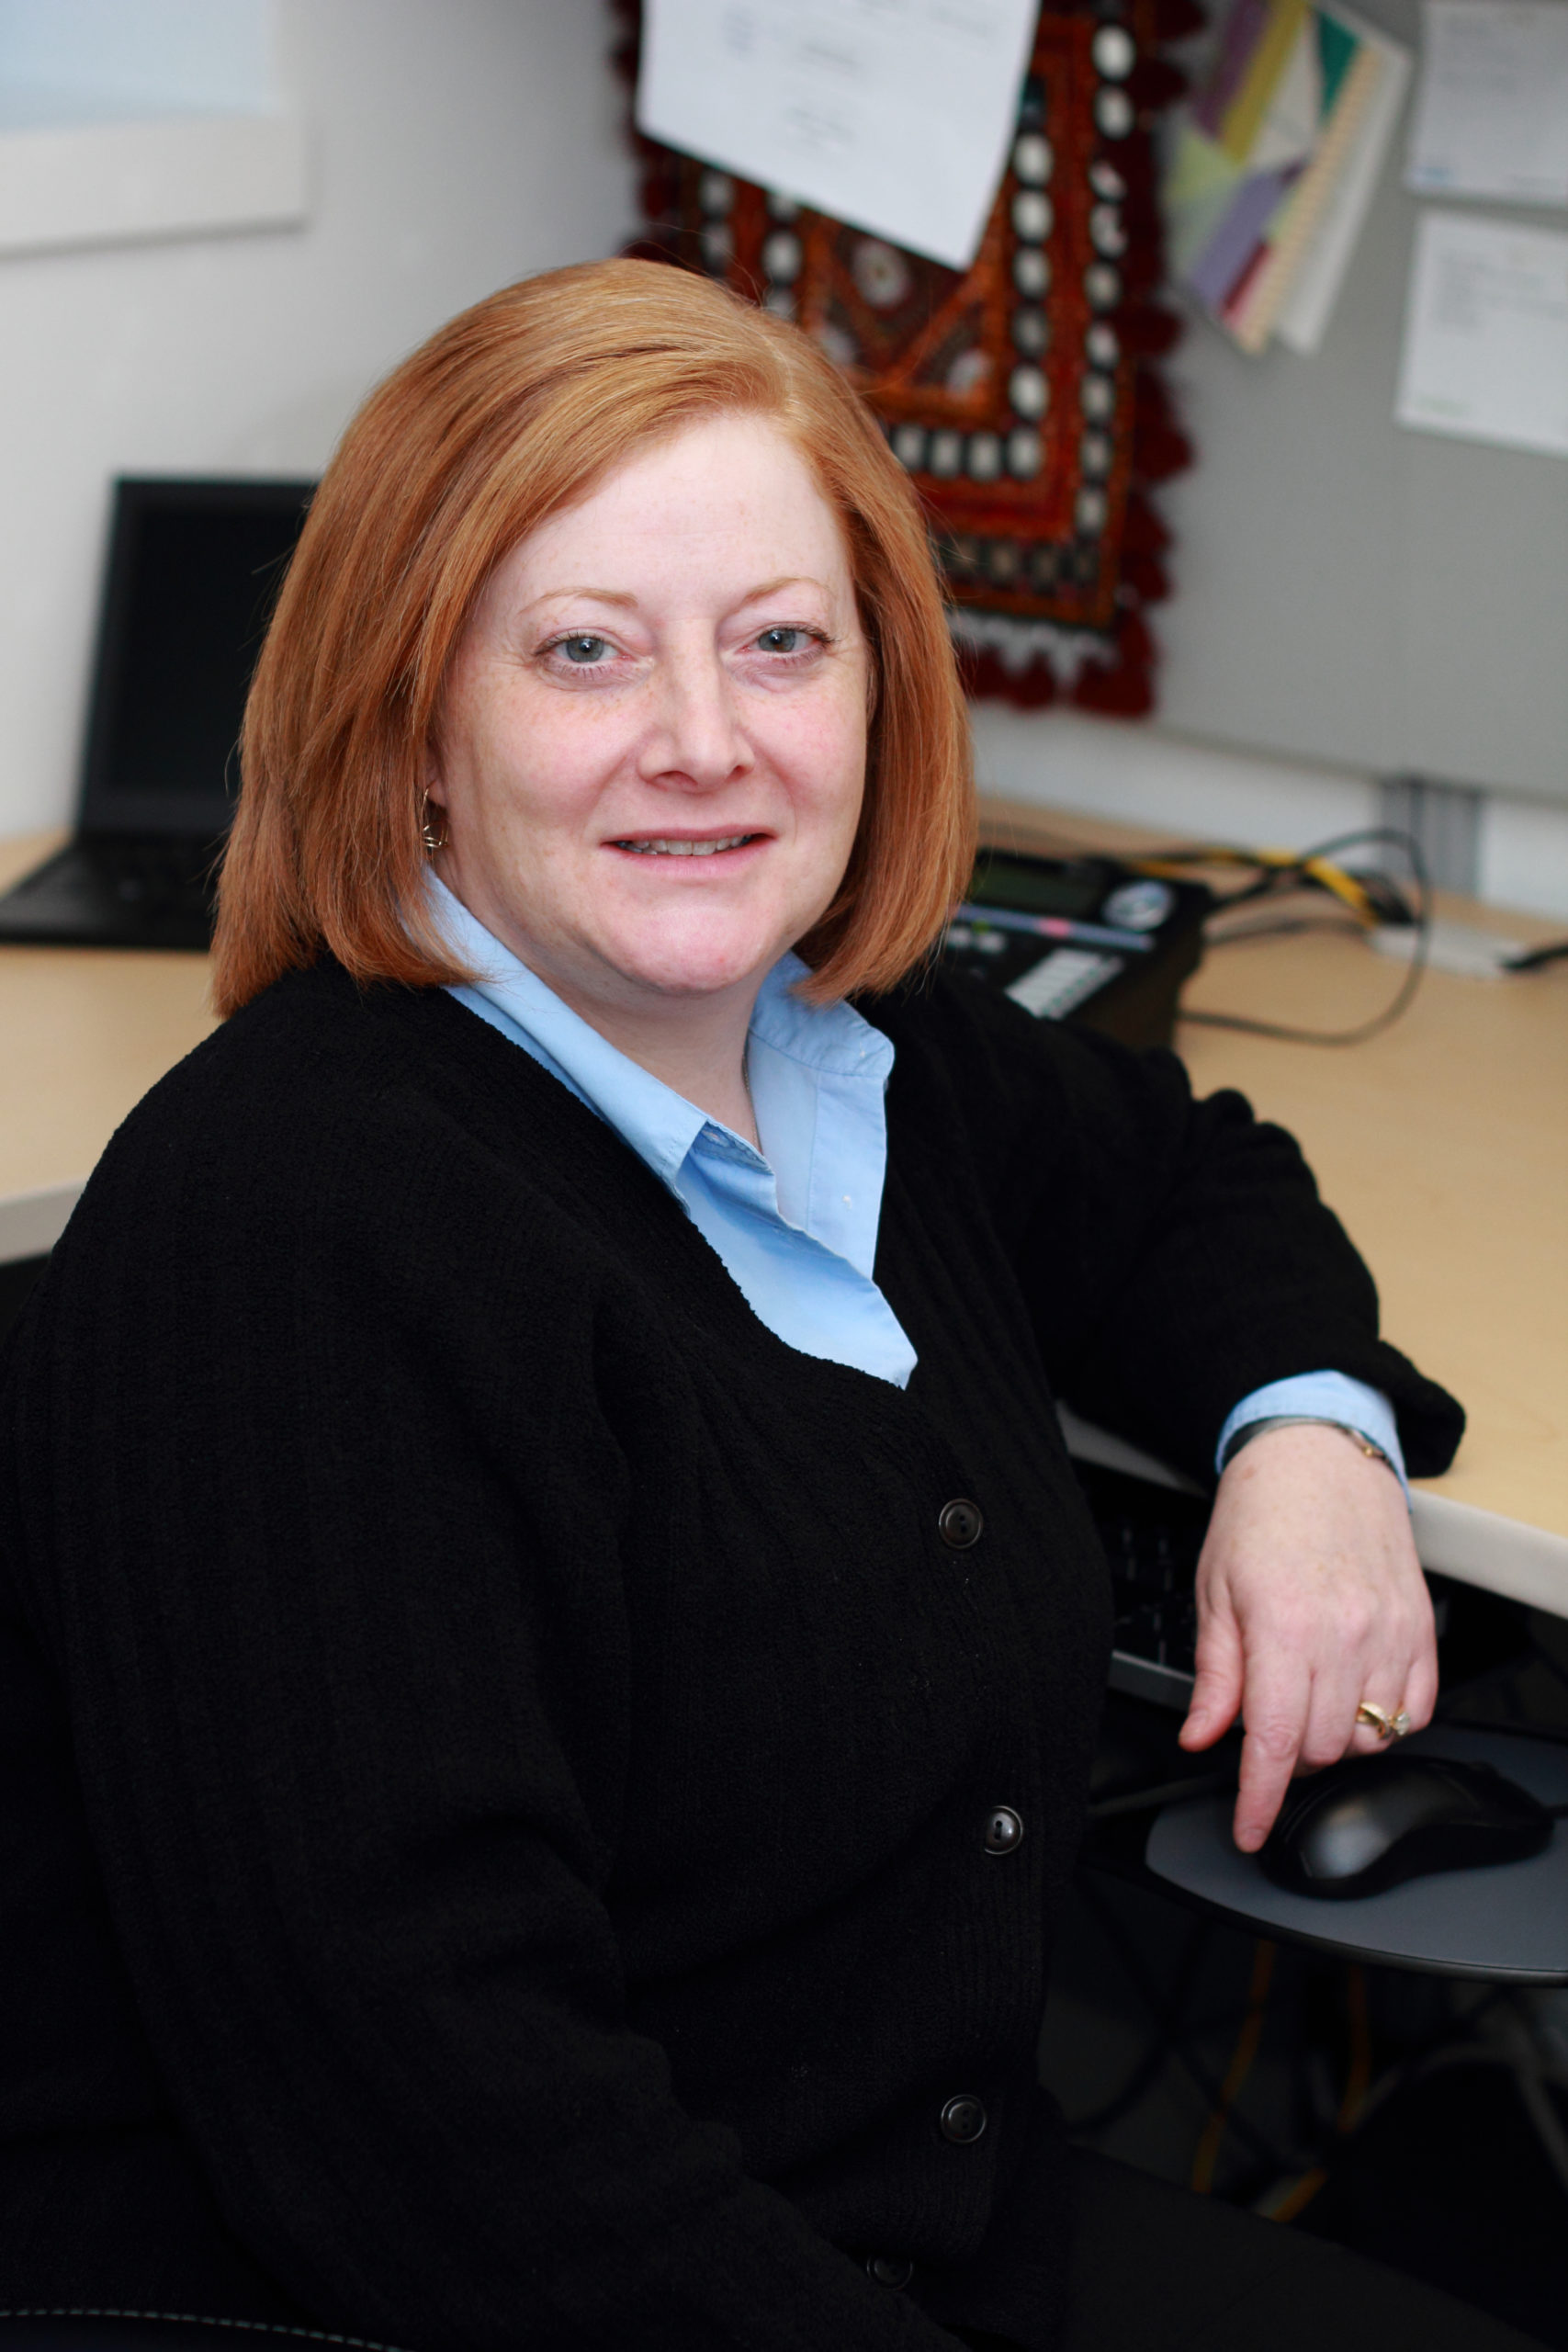 Joanne Kamens has short red hair, is wearing business clothing, and sitting at an office desk.